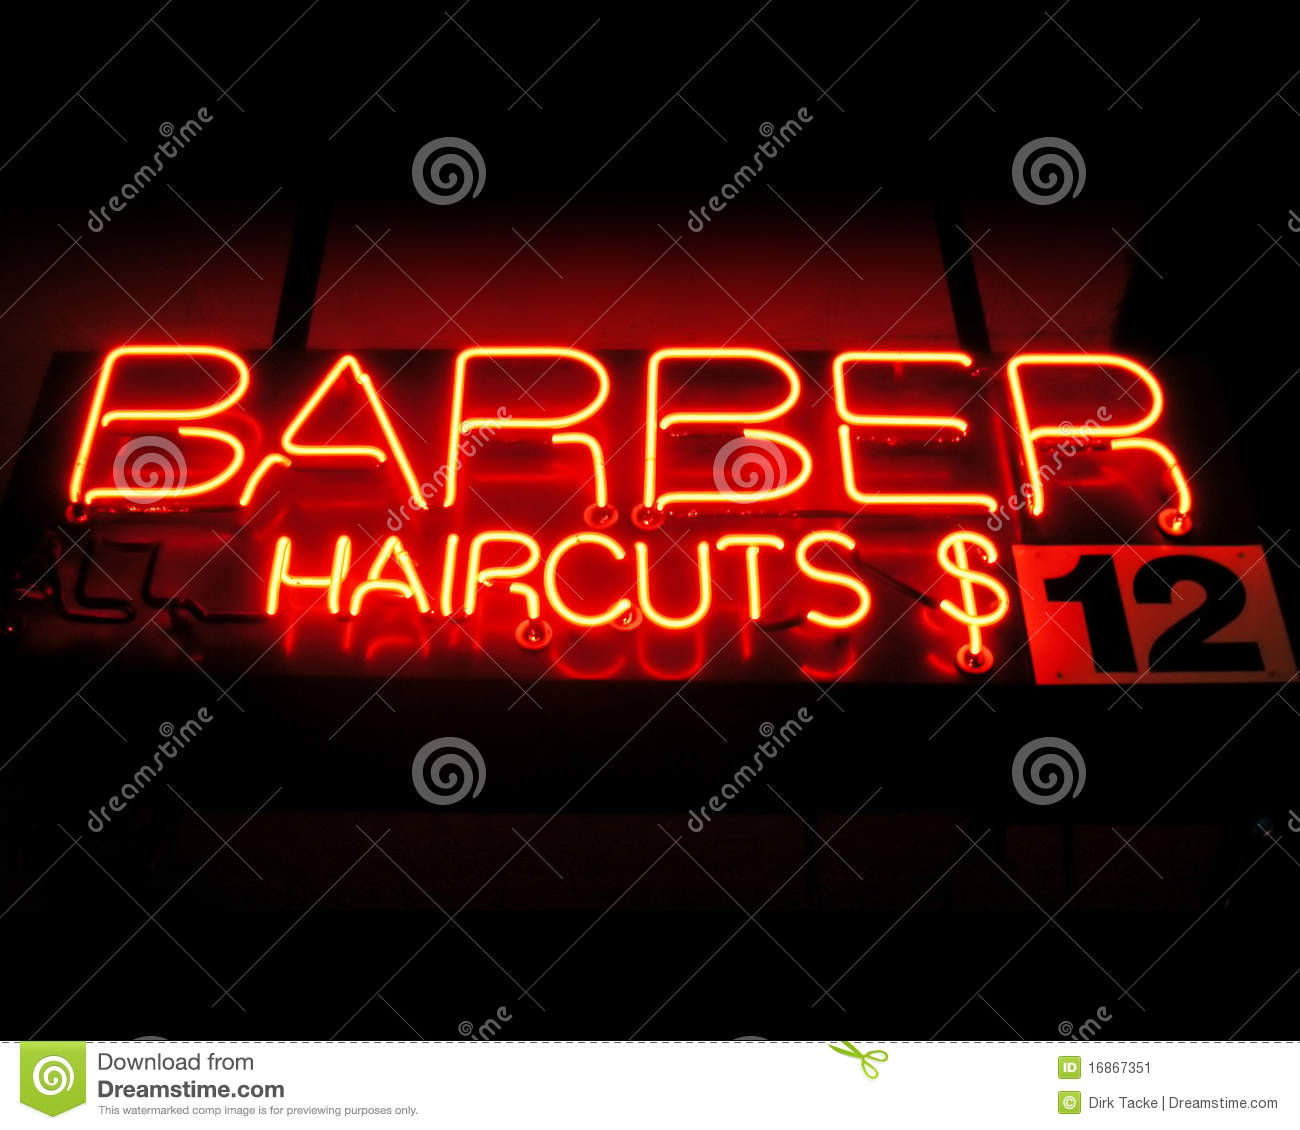 Barber Shop Queen Creek Az : Barber - haircuts neon sign Haircuts To Signs